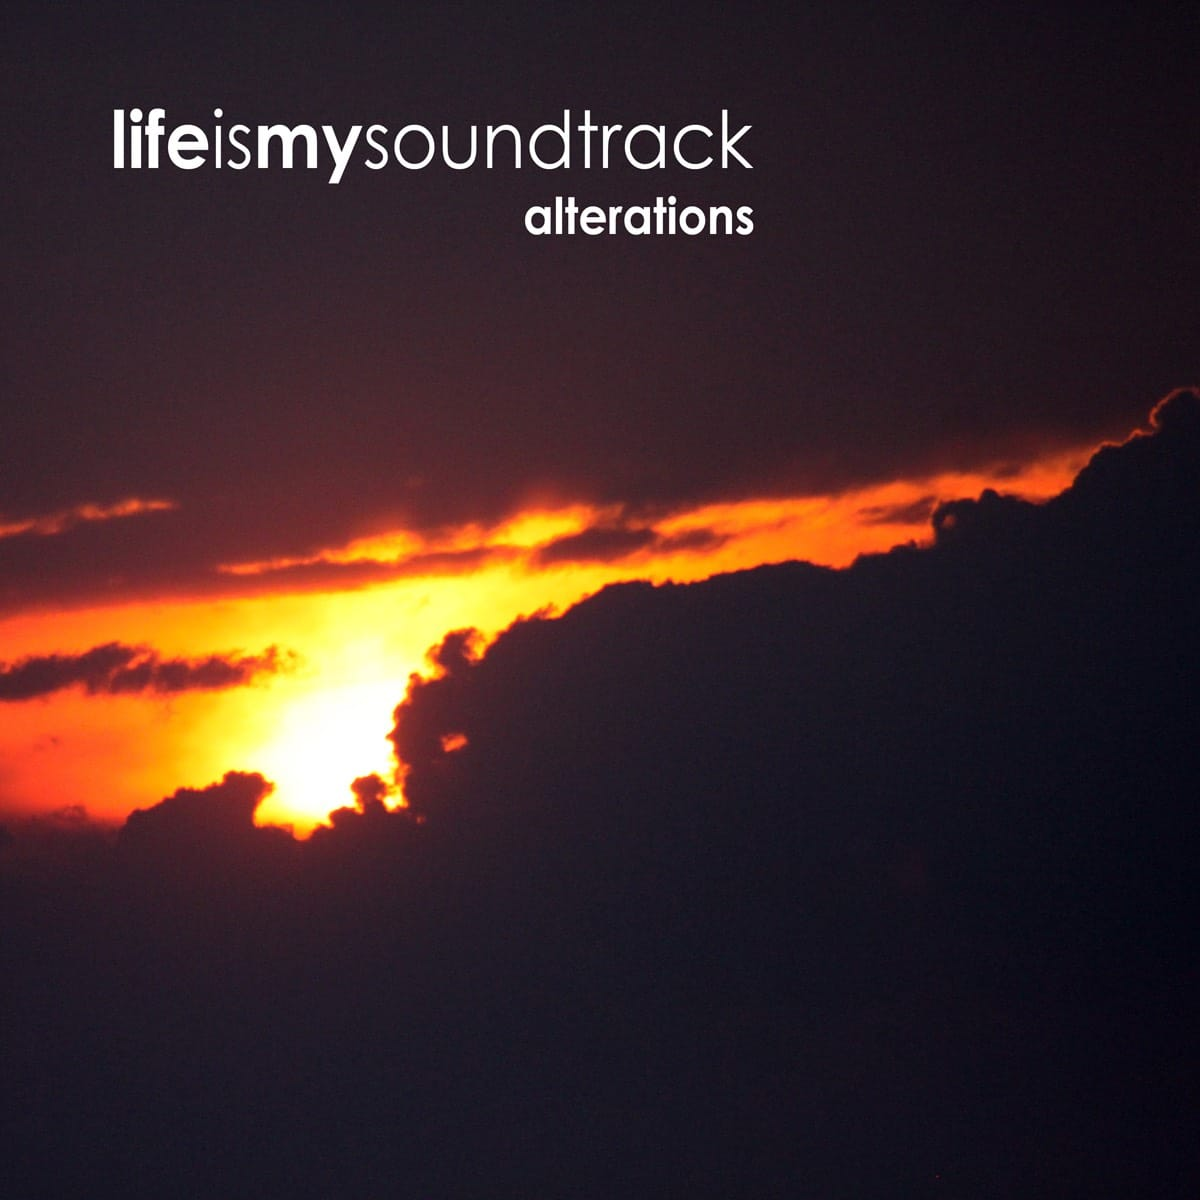 The album Alterations by Life Is My Soundtrack - Downtempo music that features ambient soundscapes mixed with minimal drums